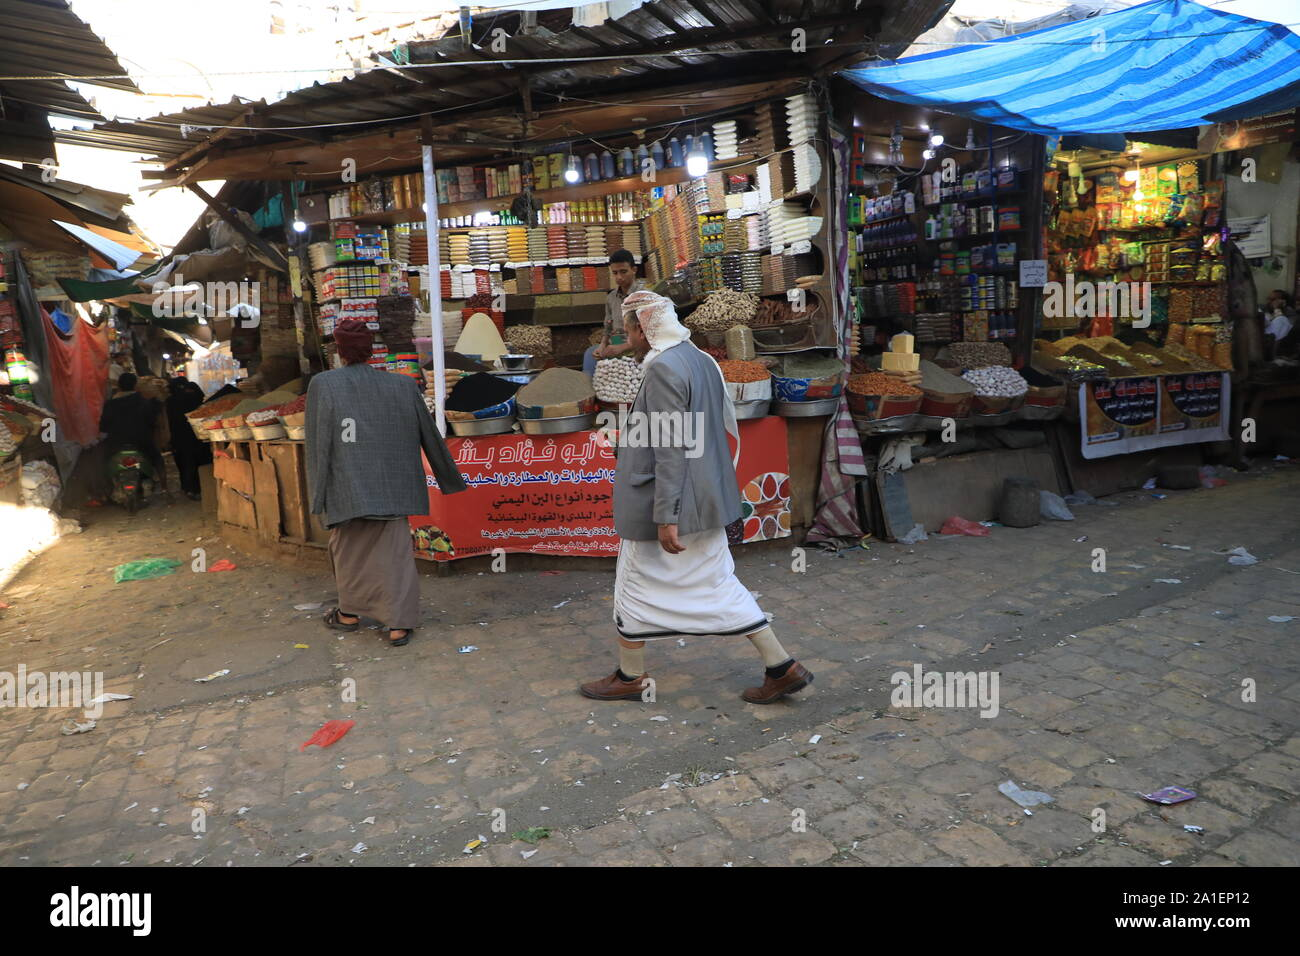 Yemenis shop at the market in the old city of Sana'a on Nov 13, 2018. Stock Photo